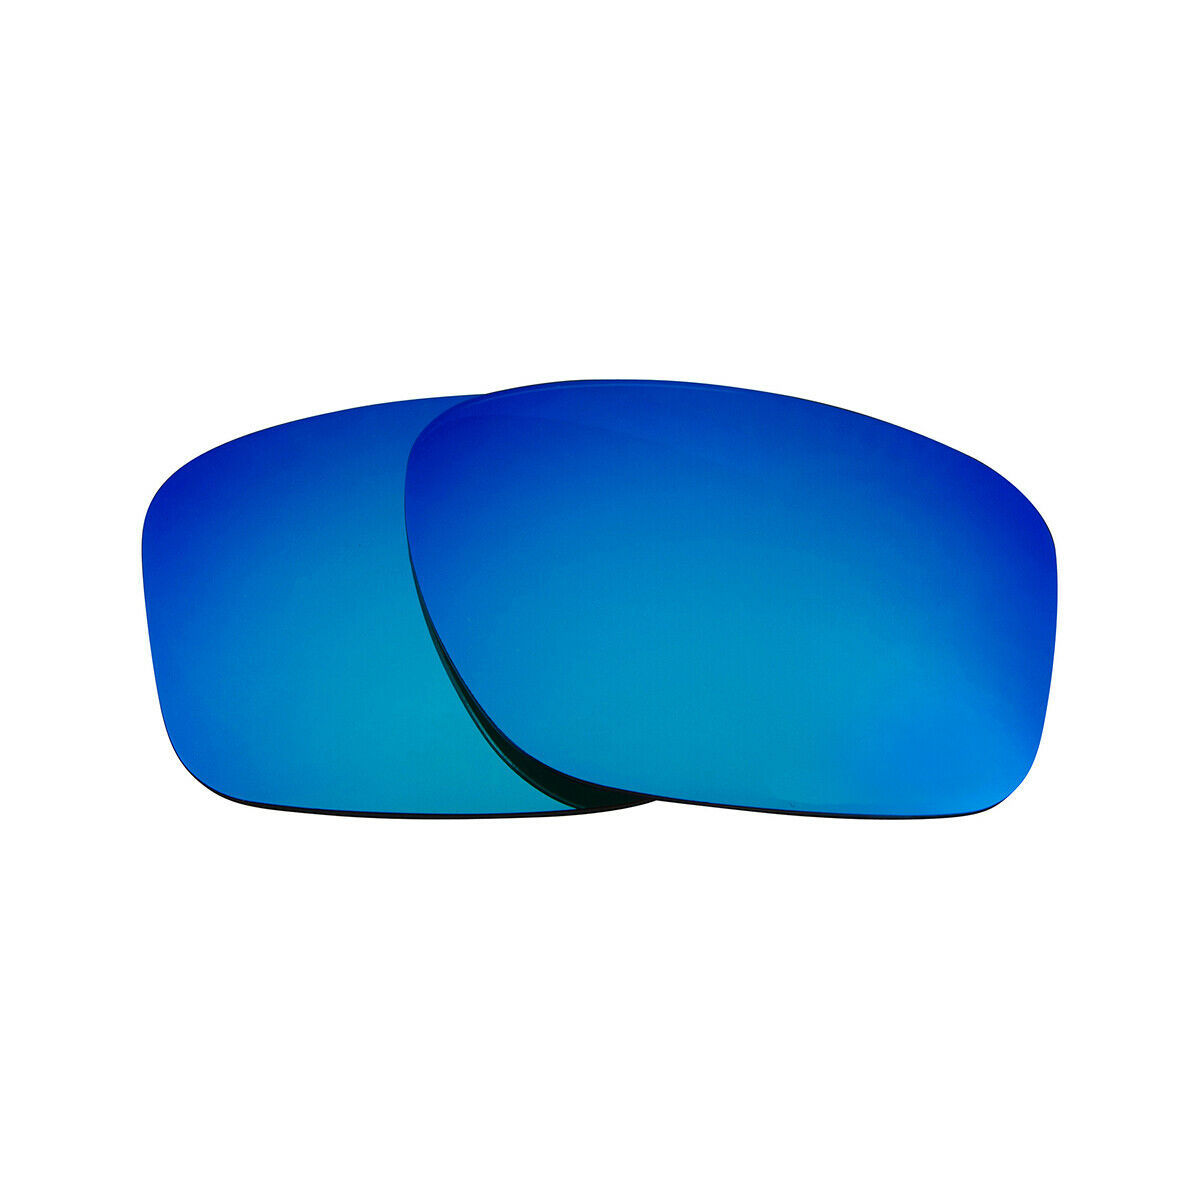 Primary image for Polarized Replacement Lenses for Oakley Mainlink Sunglasses Anti-Scratch Blue